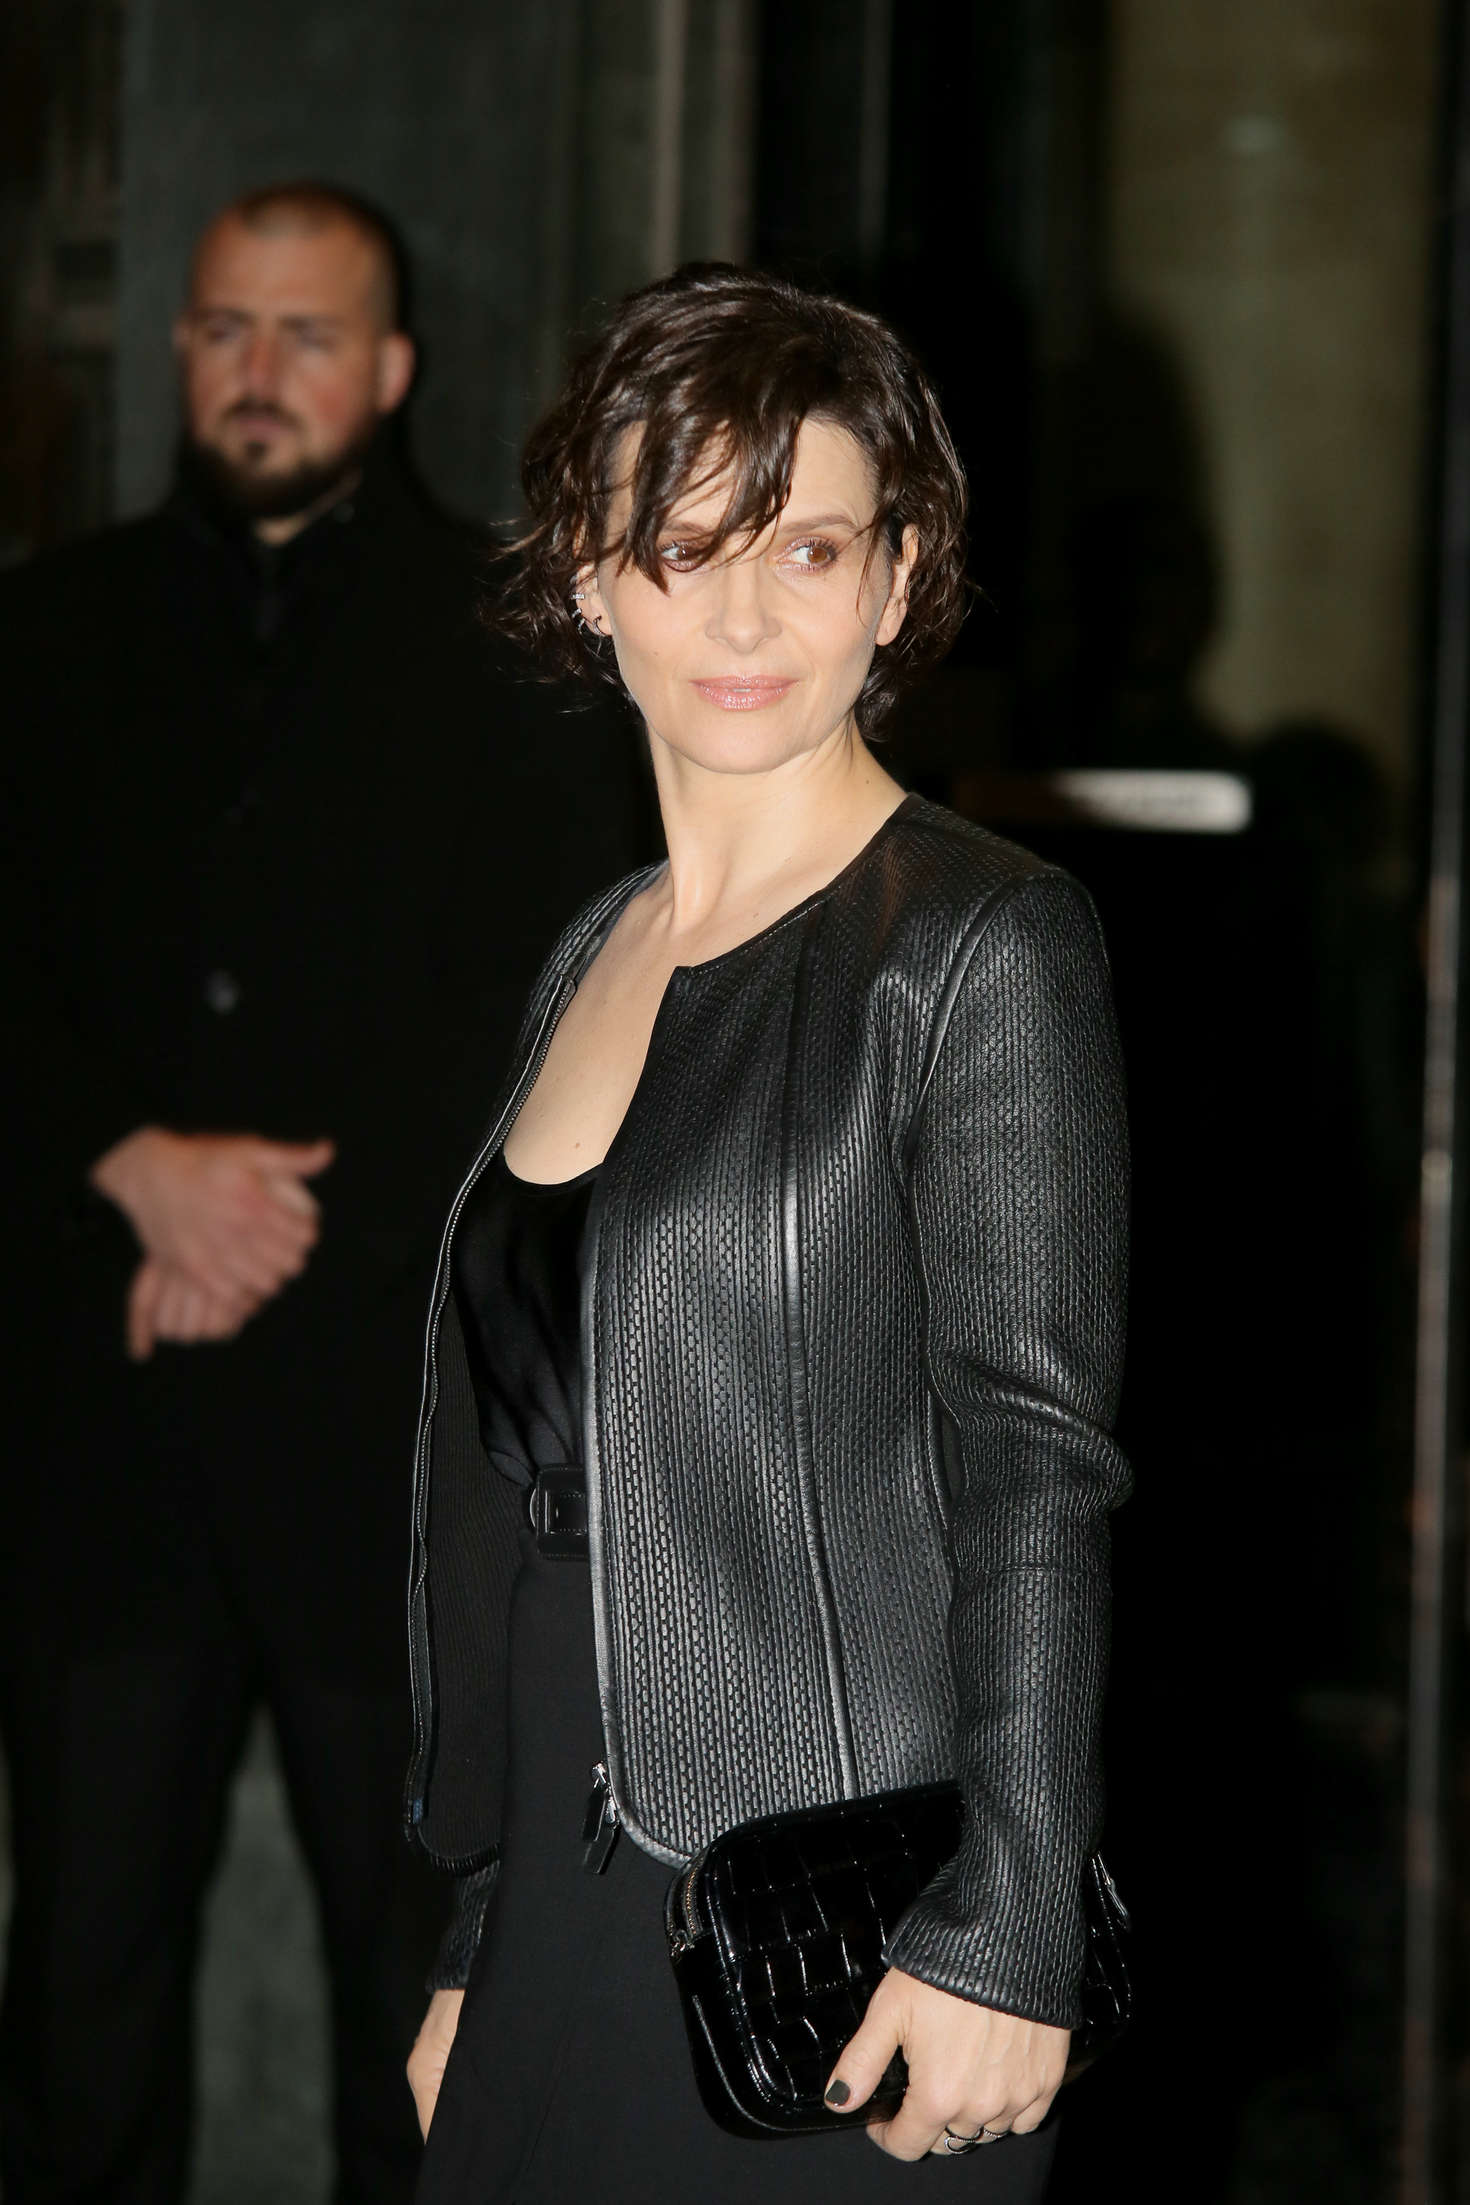 Juliette Binoche Arrivals at Giorgio Armani Fashion Show Spring Summer in Paris